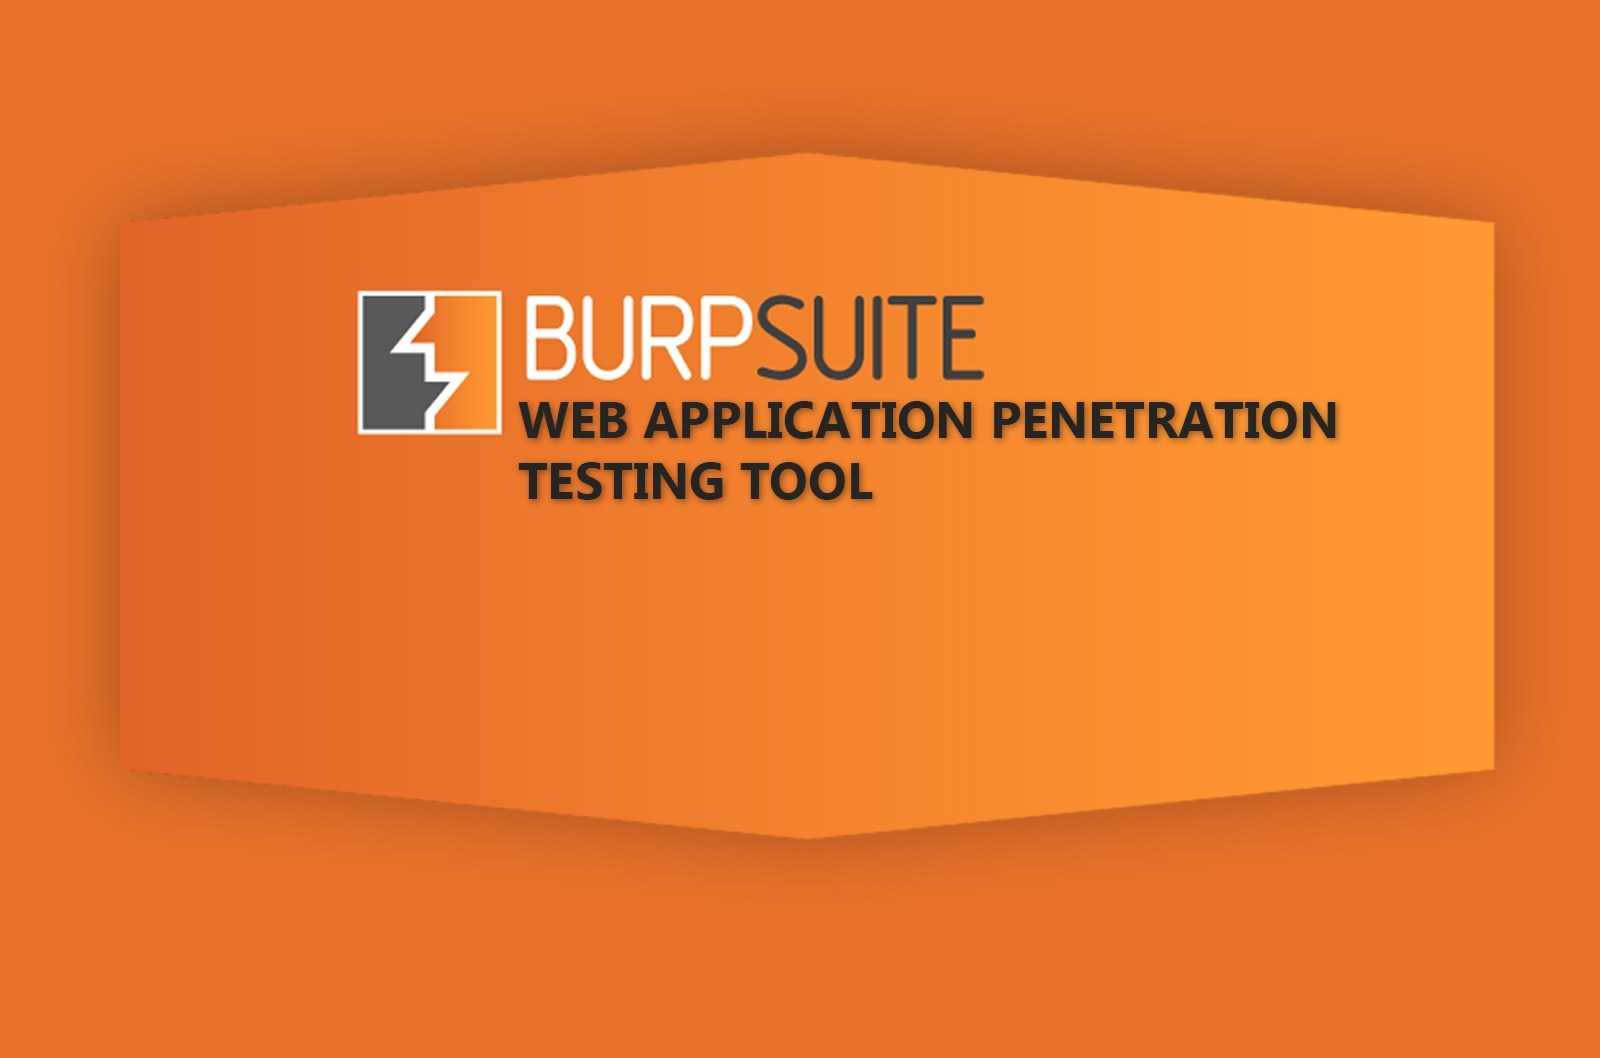 How To Use Burp Suite Like a Pro Hacker Step By Step